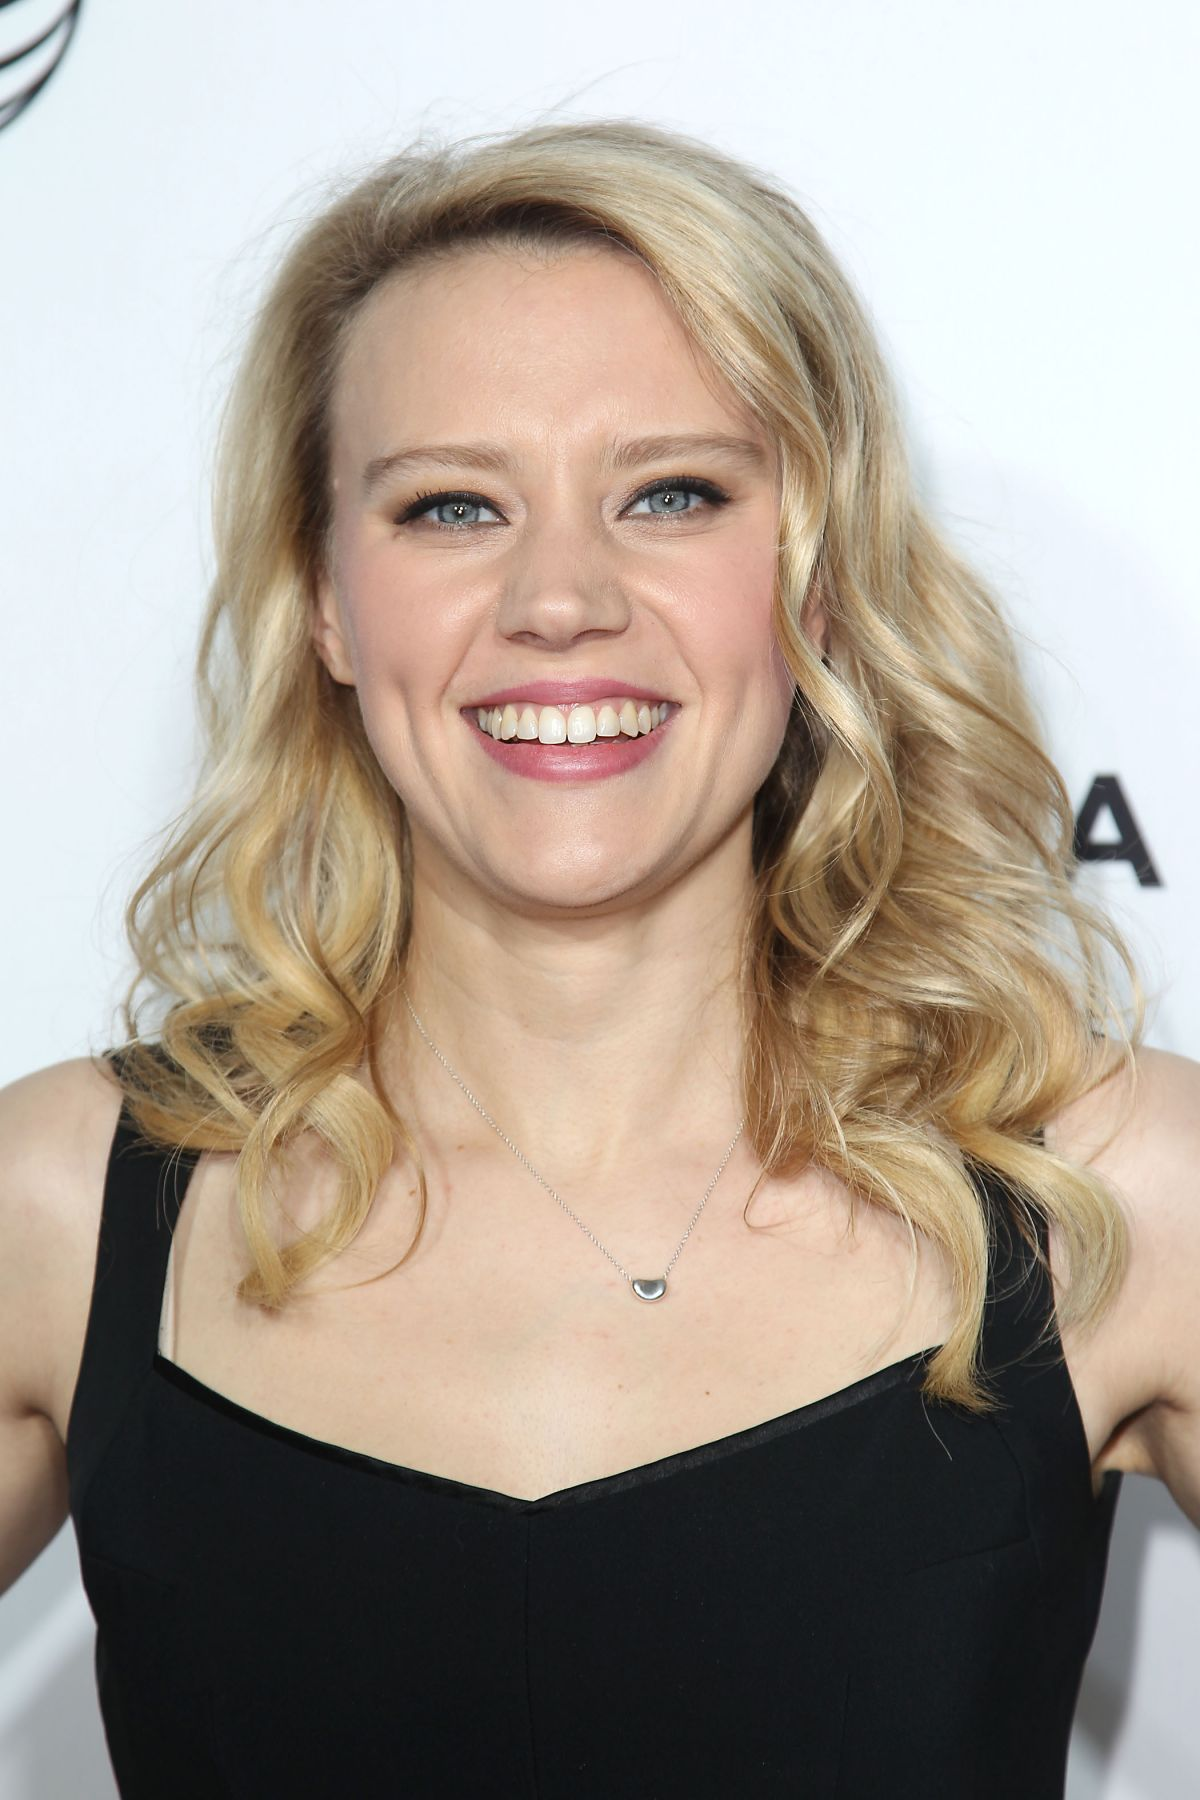 KATE MCKINNON at Live from New York! Premiere at 2015 Tribeca Film Festival in New York